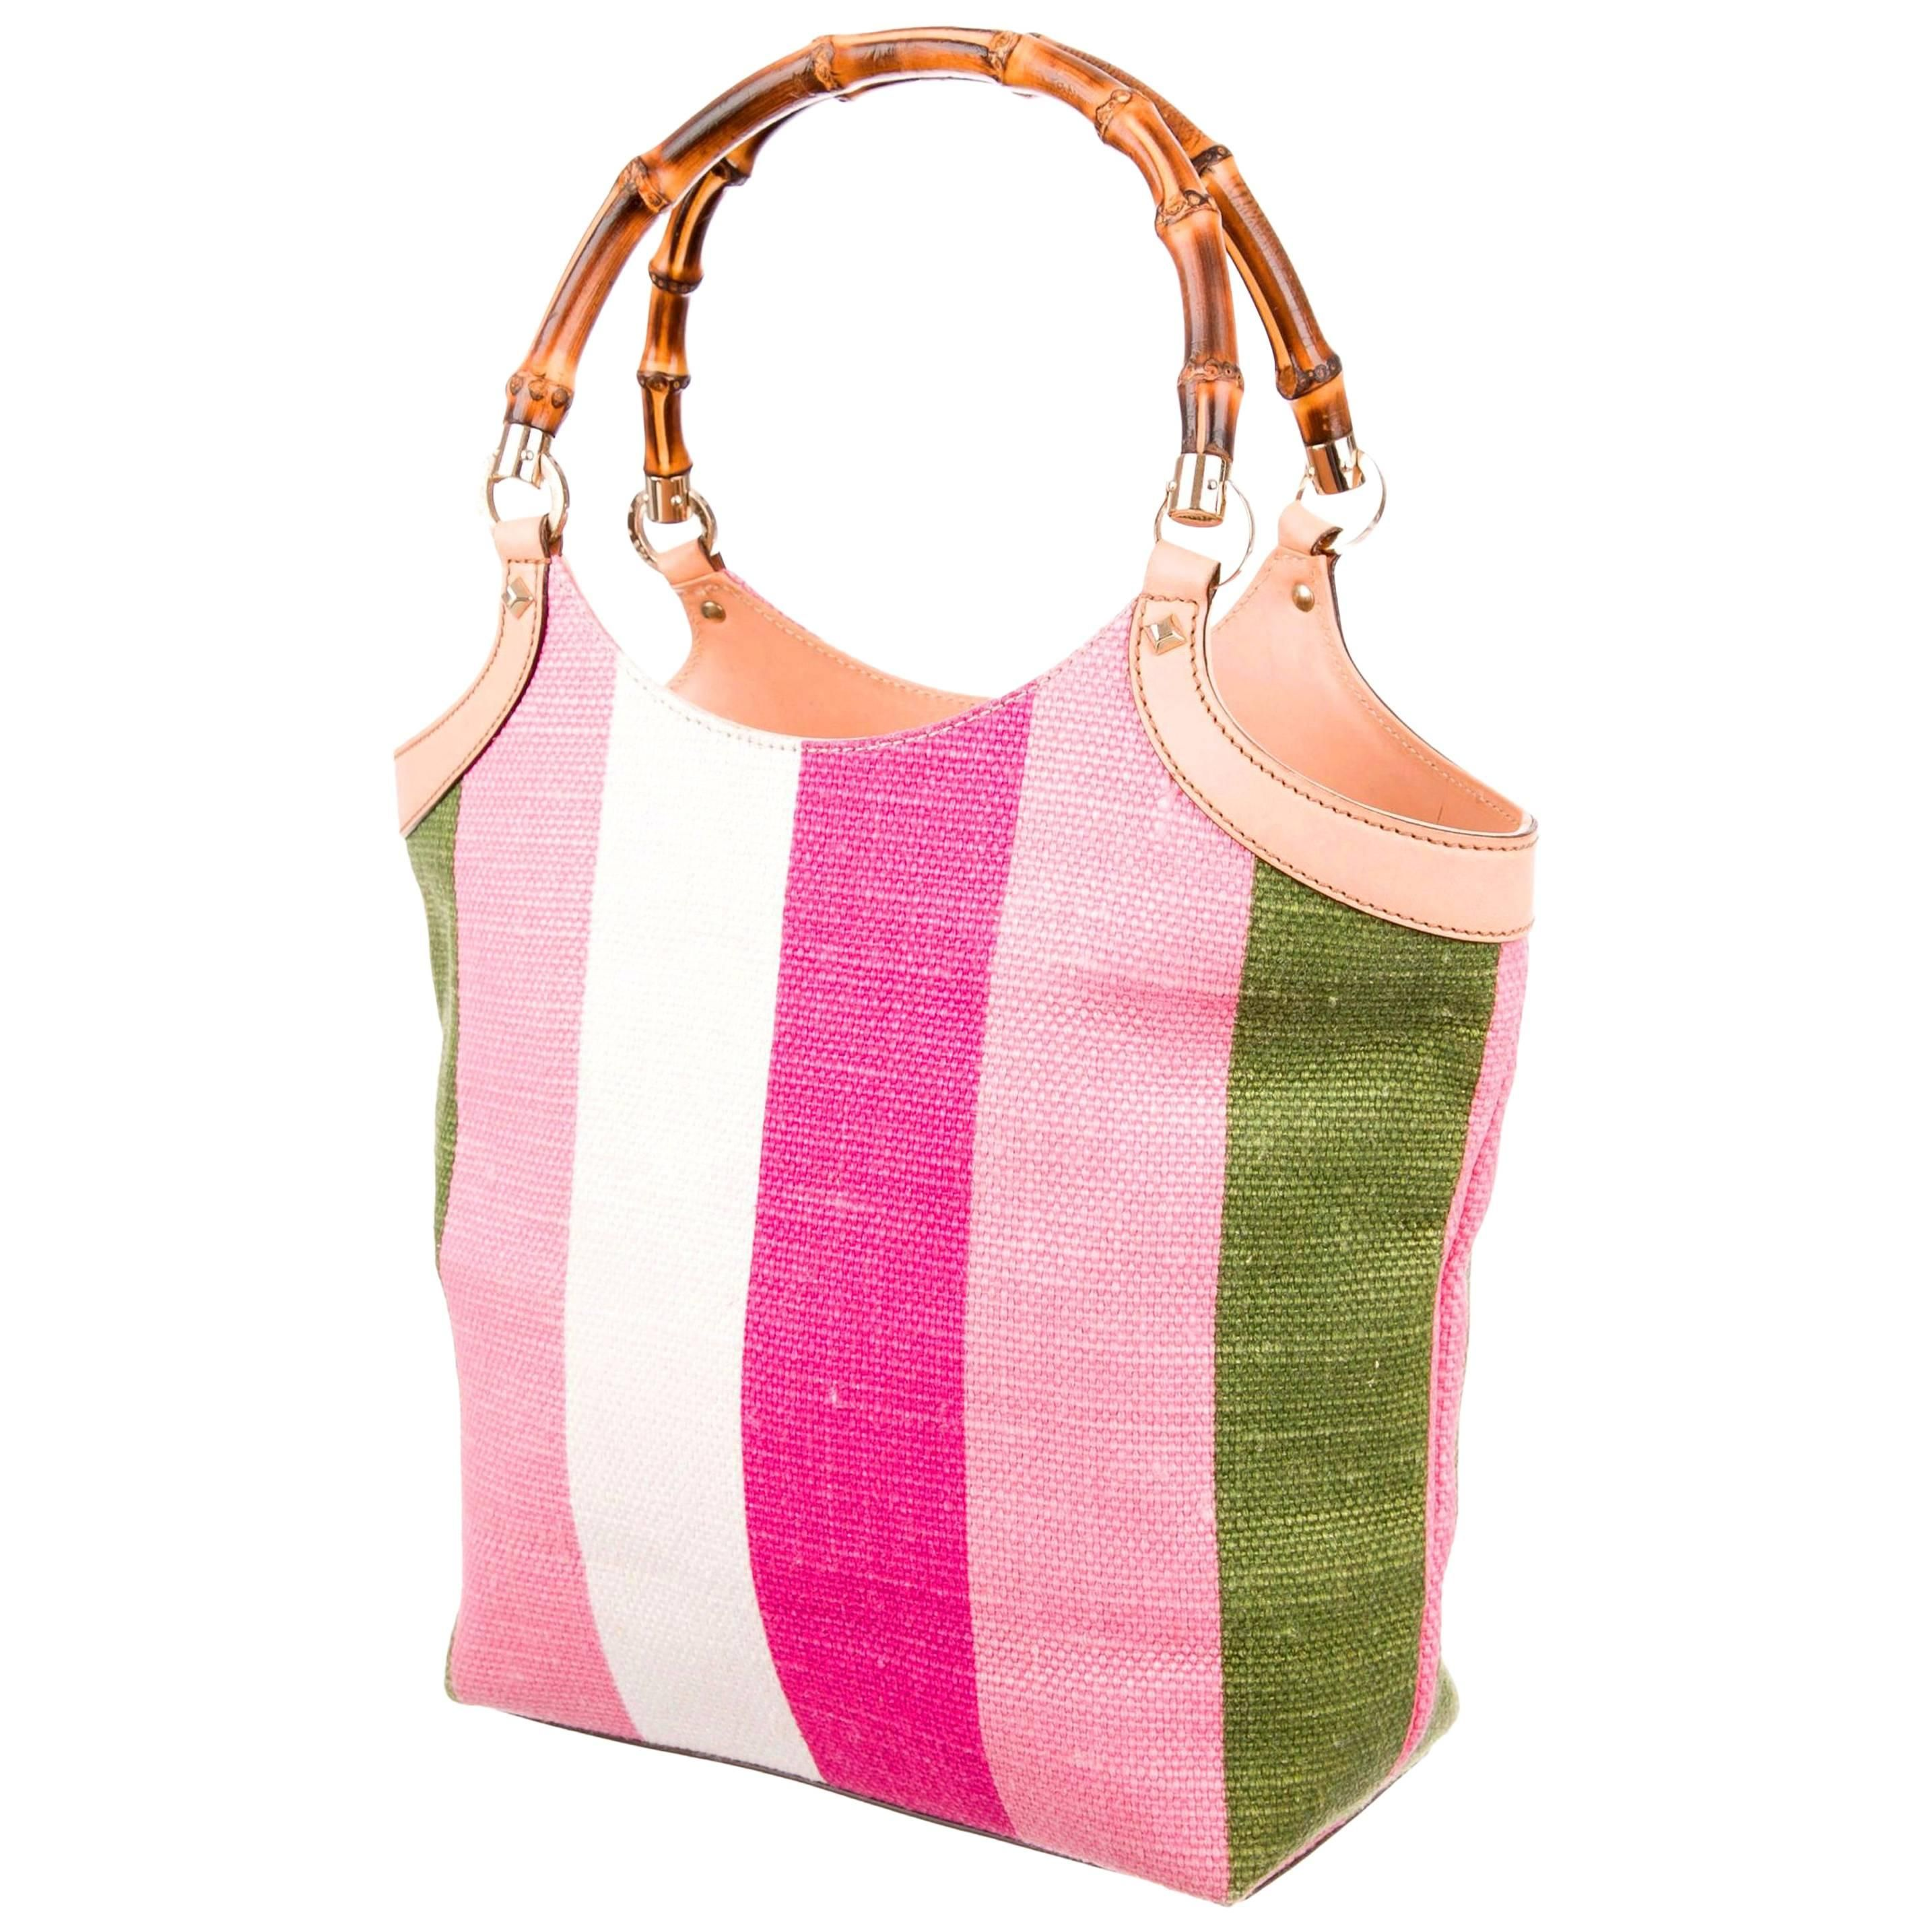 62996ee05238 Gucci Striped Baiadera Canvas and Leather Bamboo Handbag Bag Tote For Sale  at 1stdibs